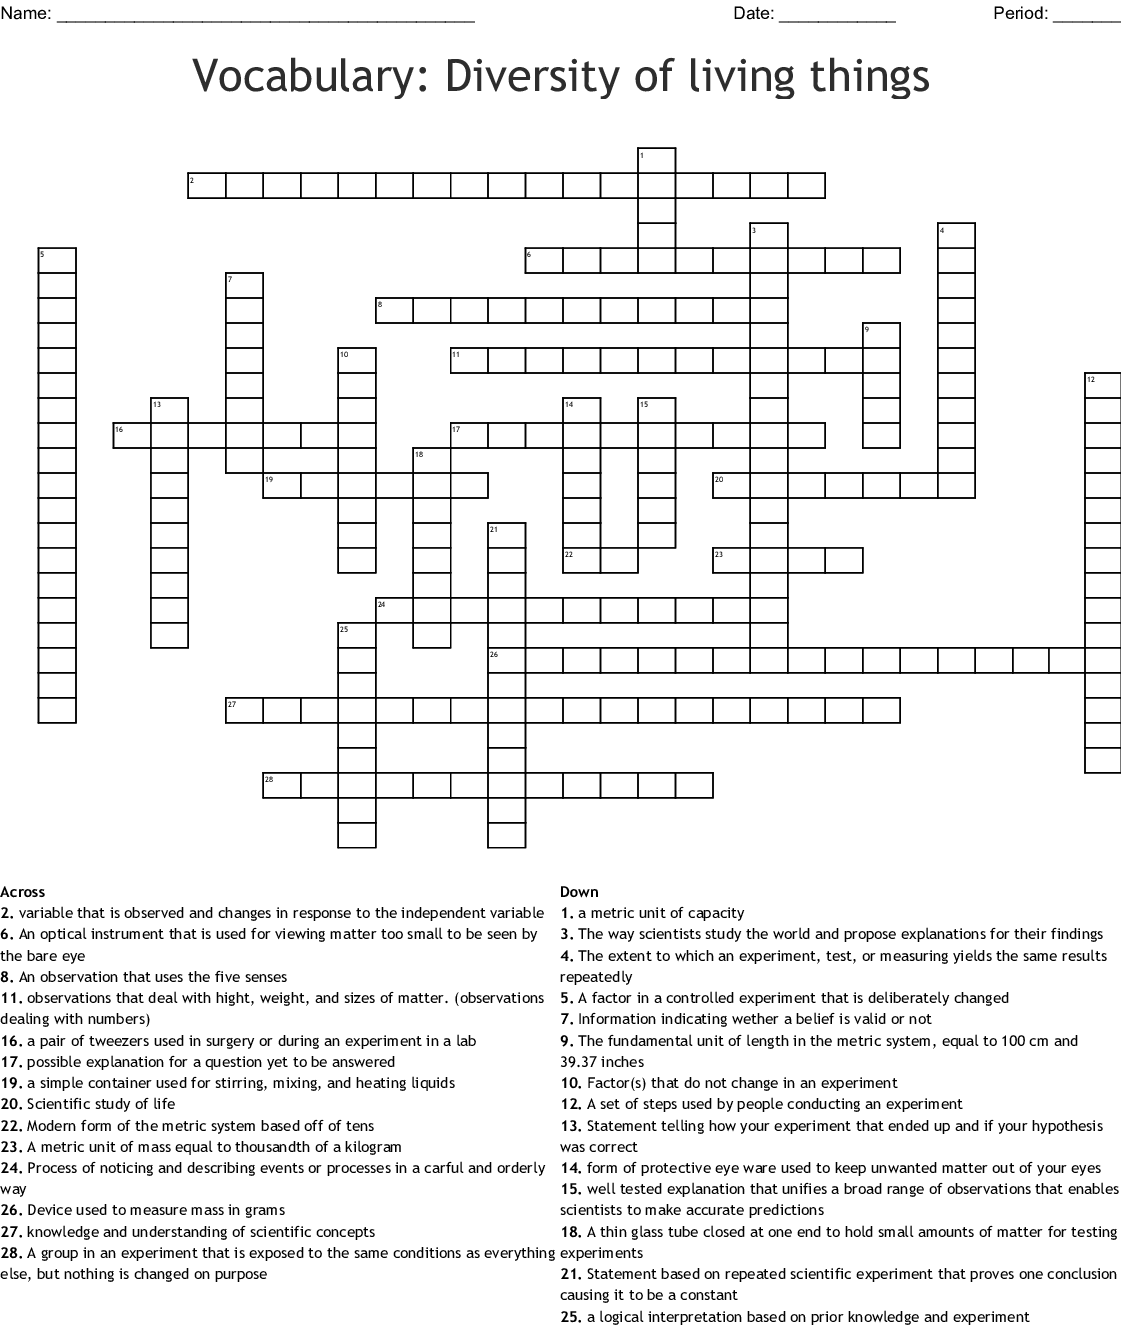 Vocabulary Diversity Of Living Things Crossword